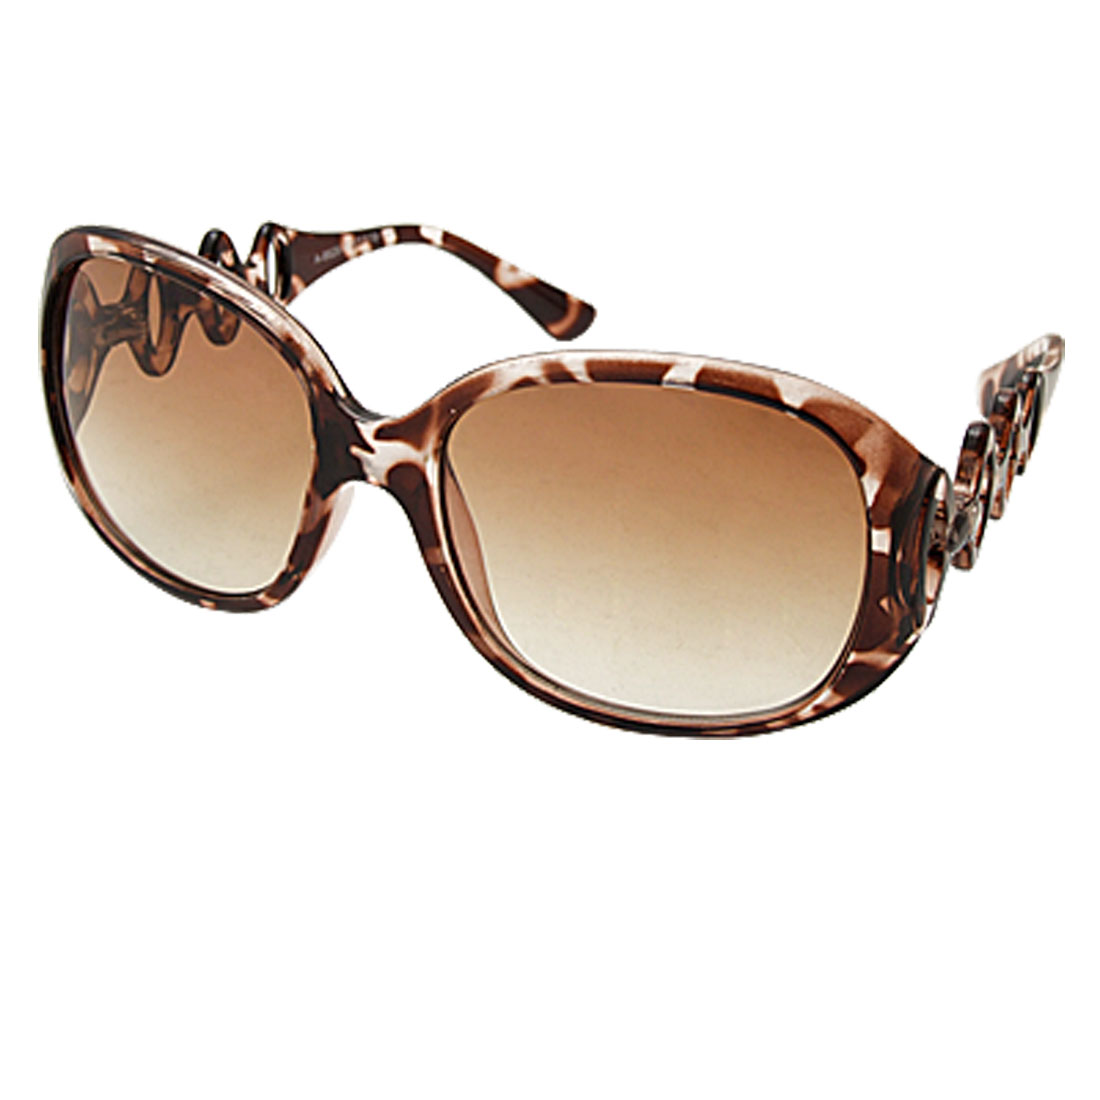 Lady's Shopping Sunglasses with Brown Lens and Frame